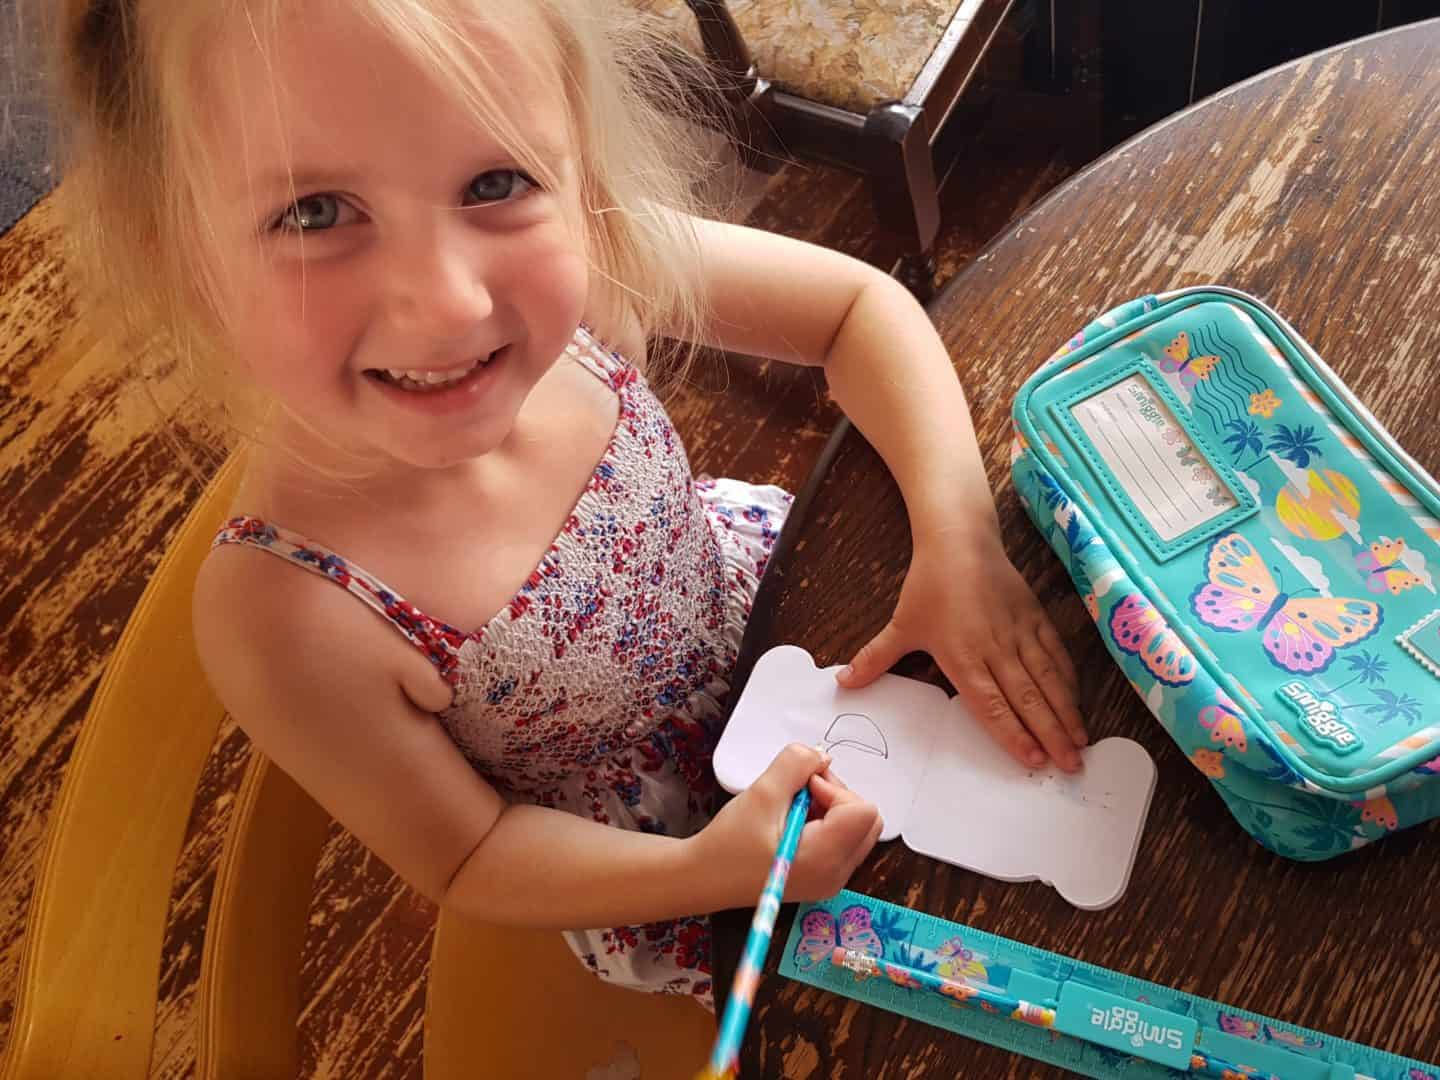 writing with Smiggle pencil and smiling